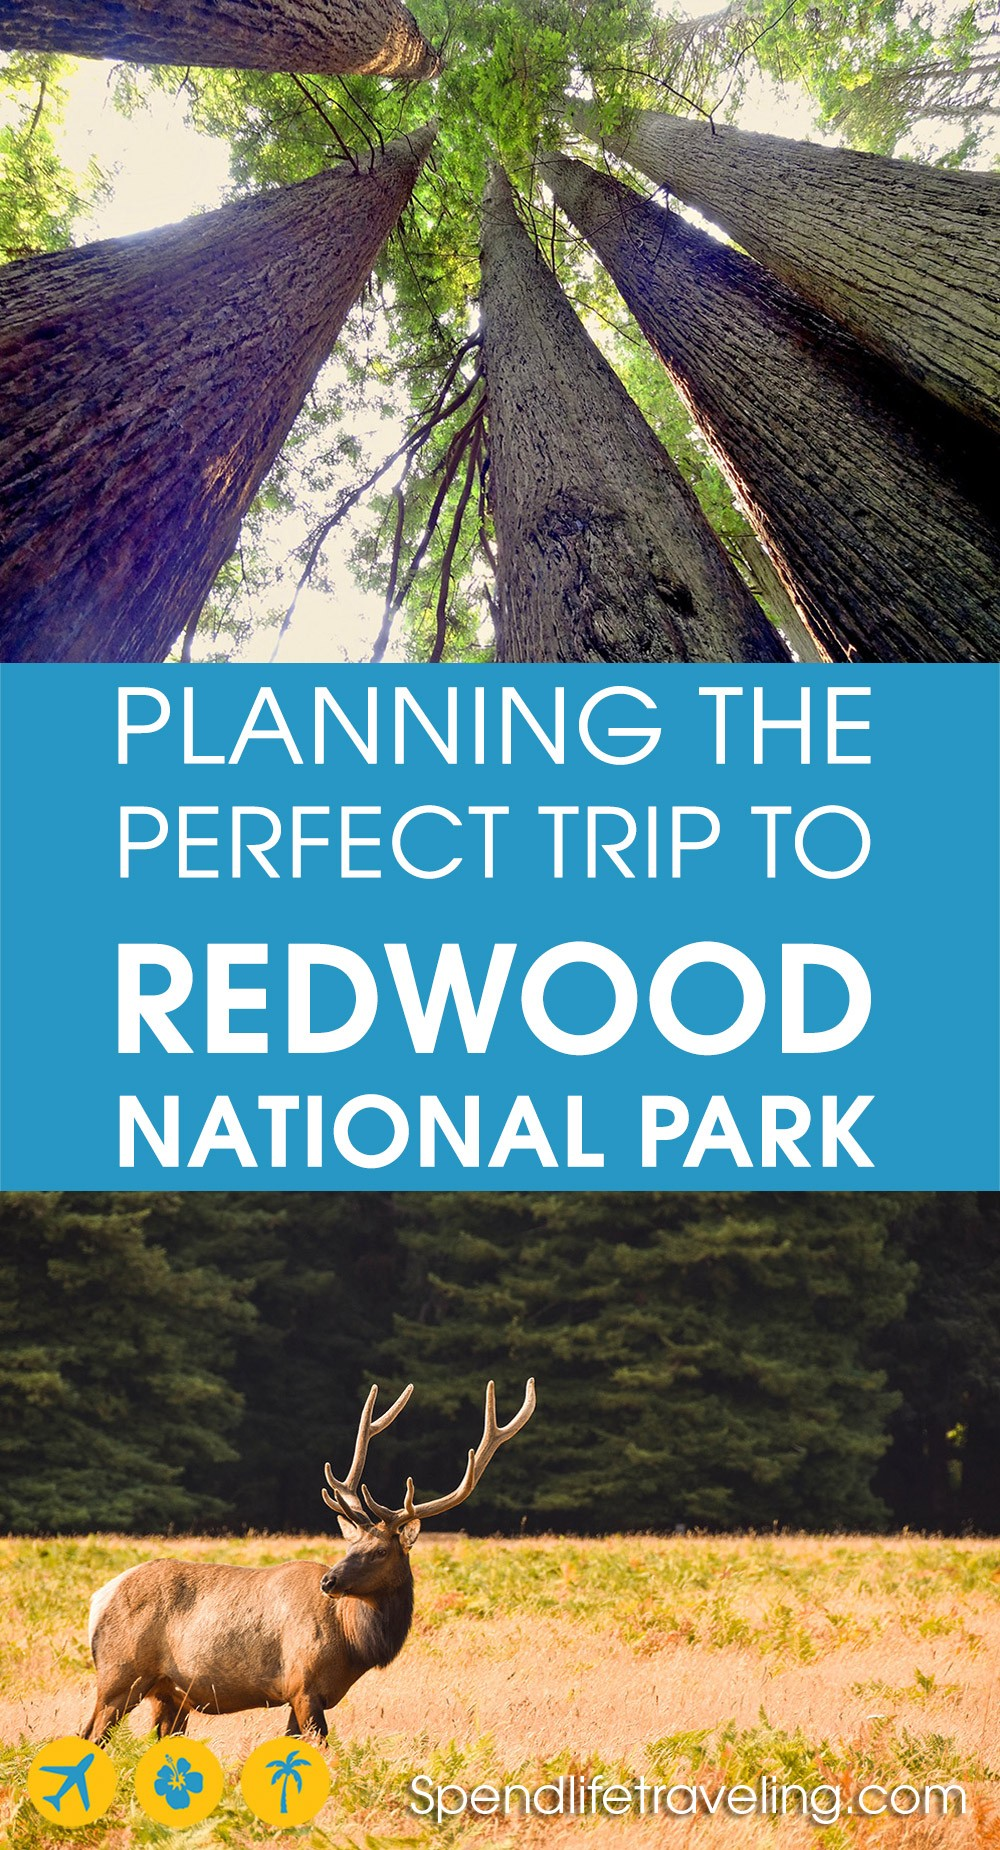 How to visit Redwood National Park in California